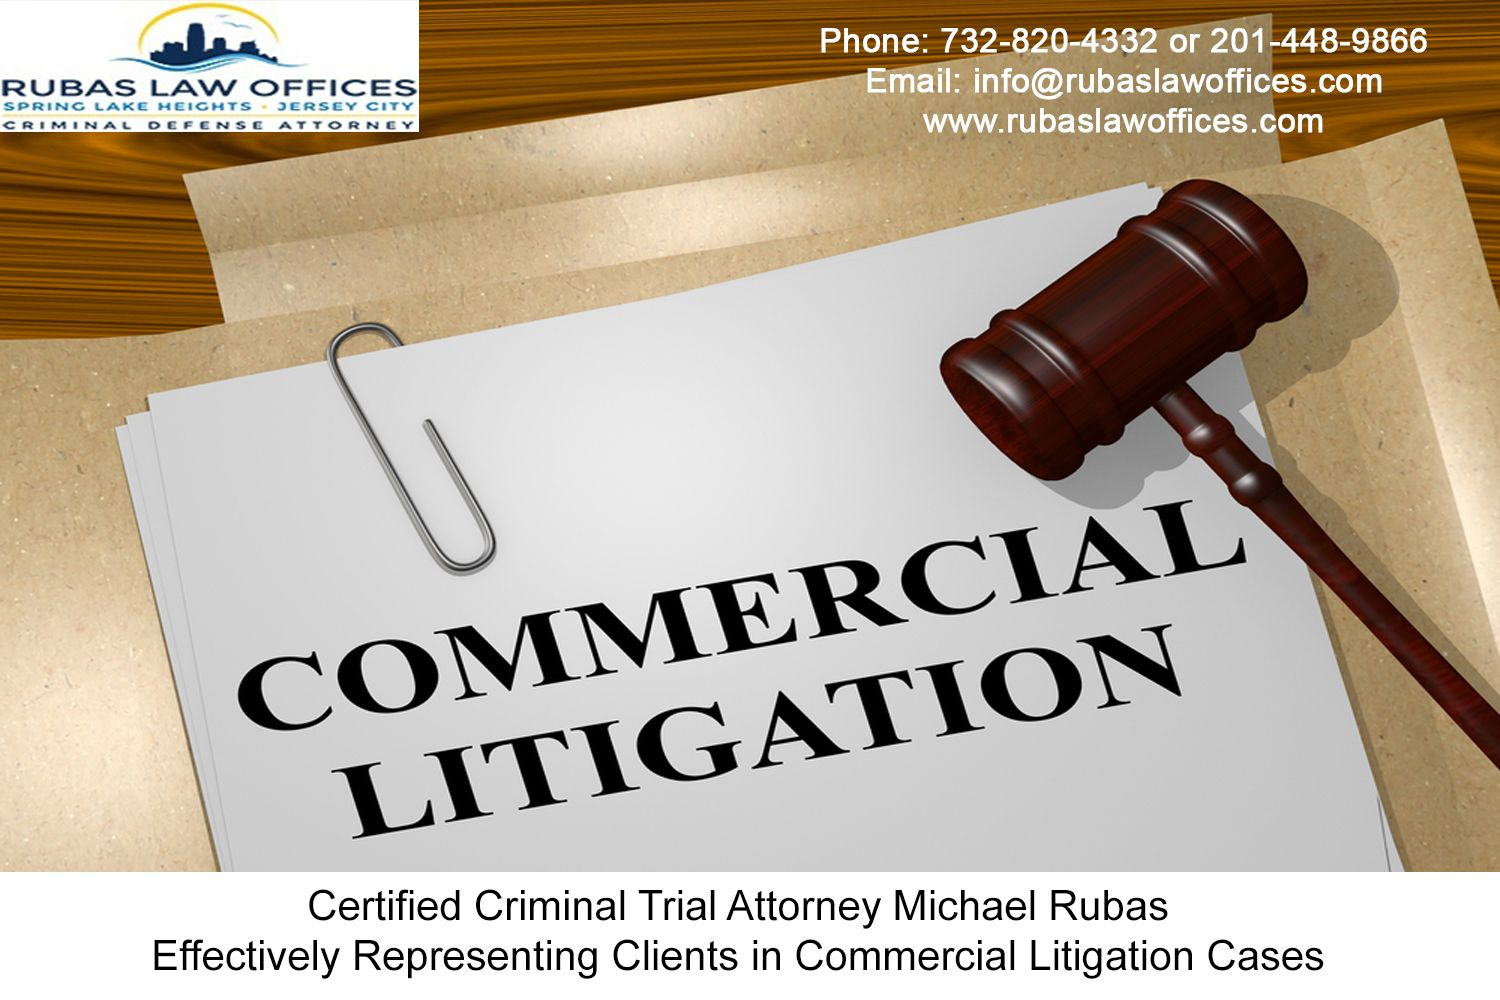 Certified Criminal Trial Attorney Michael Rubas Effectively